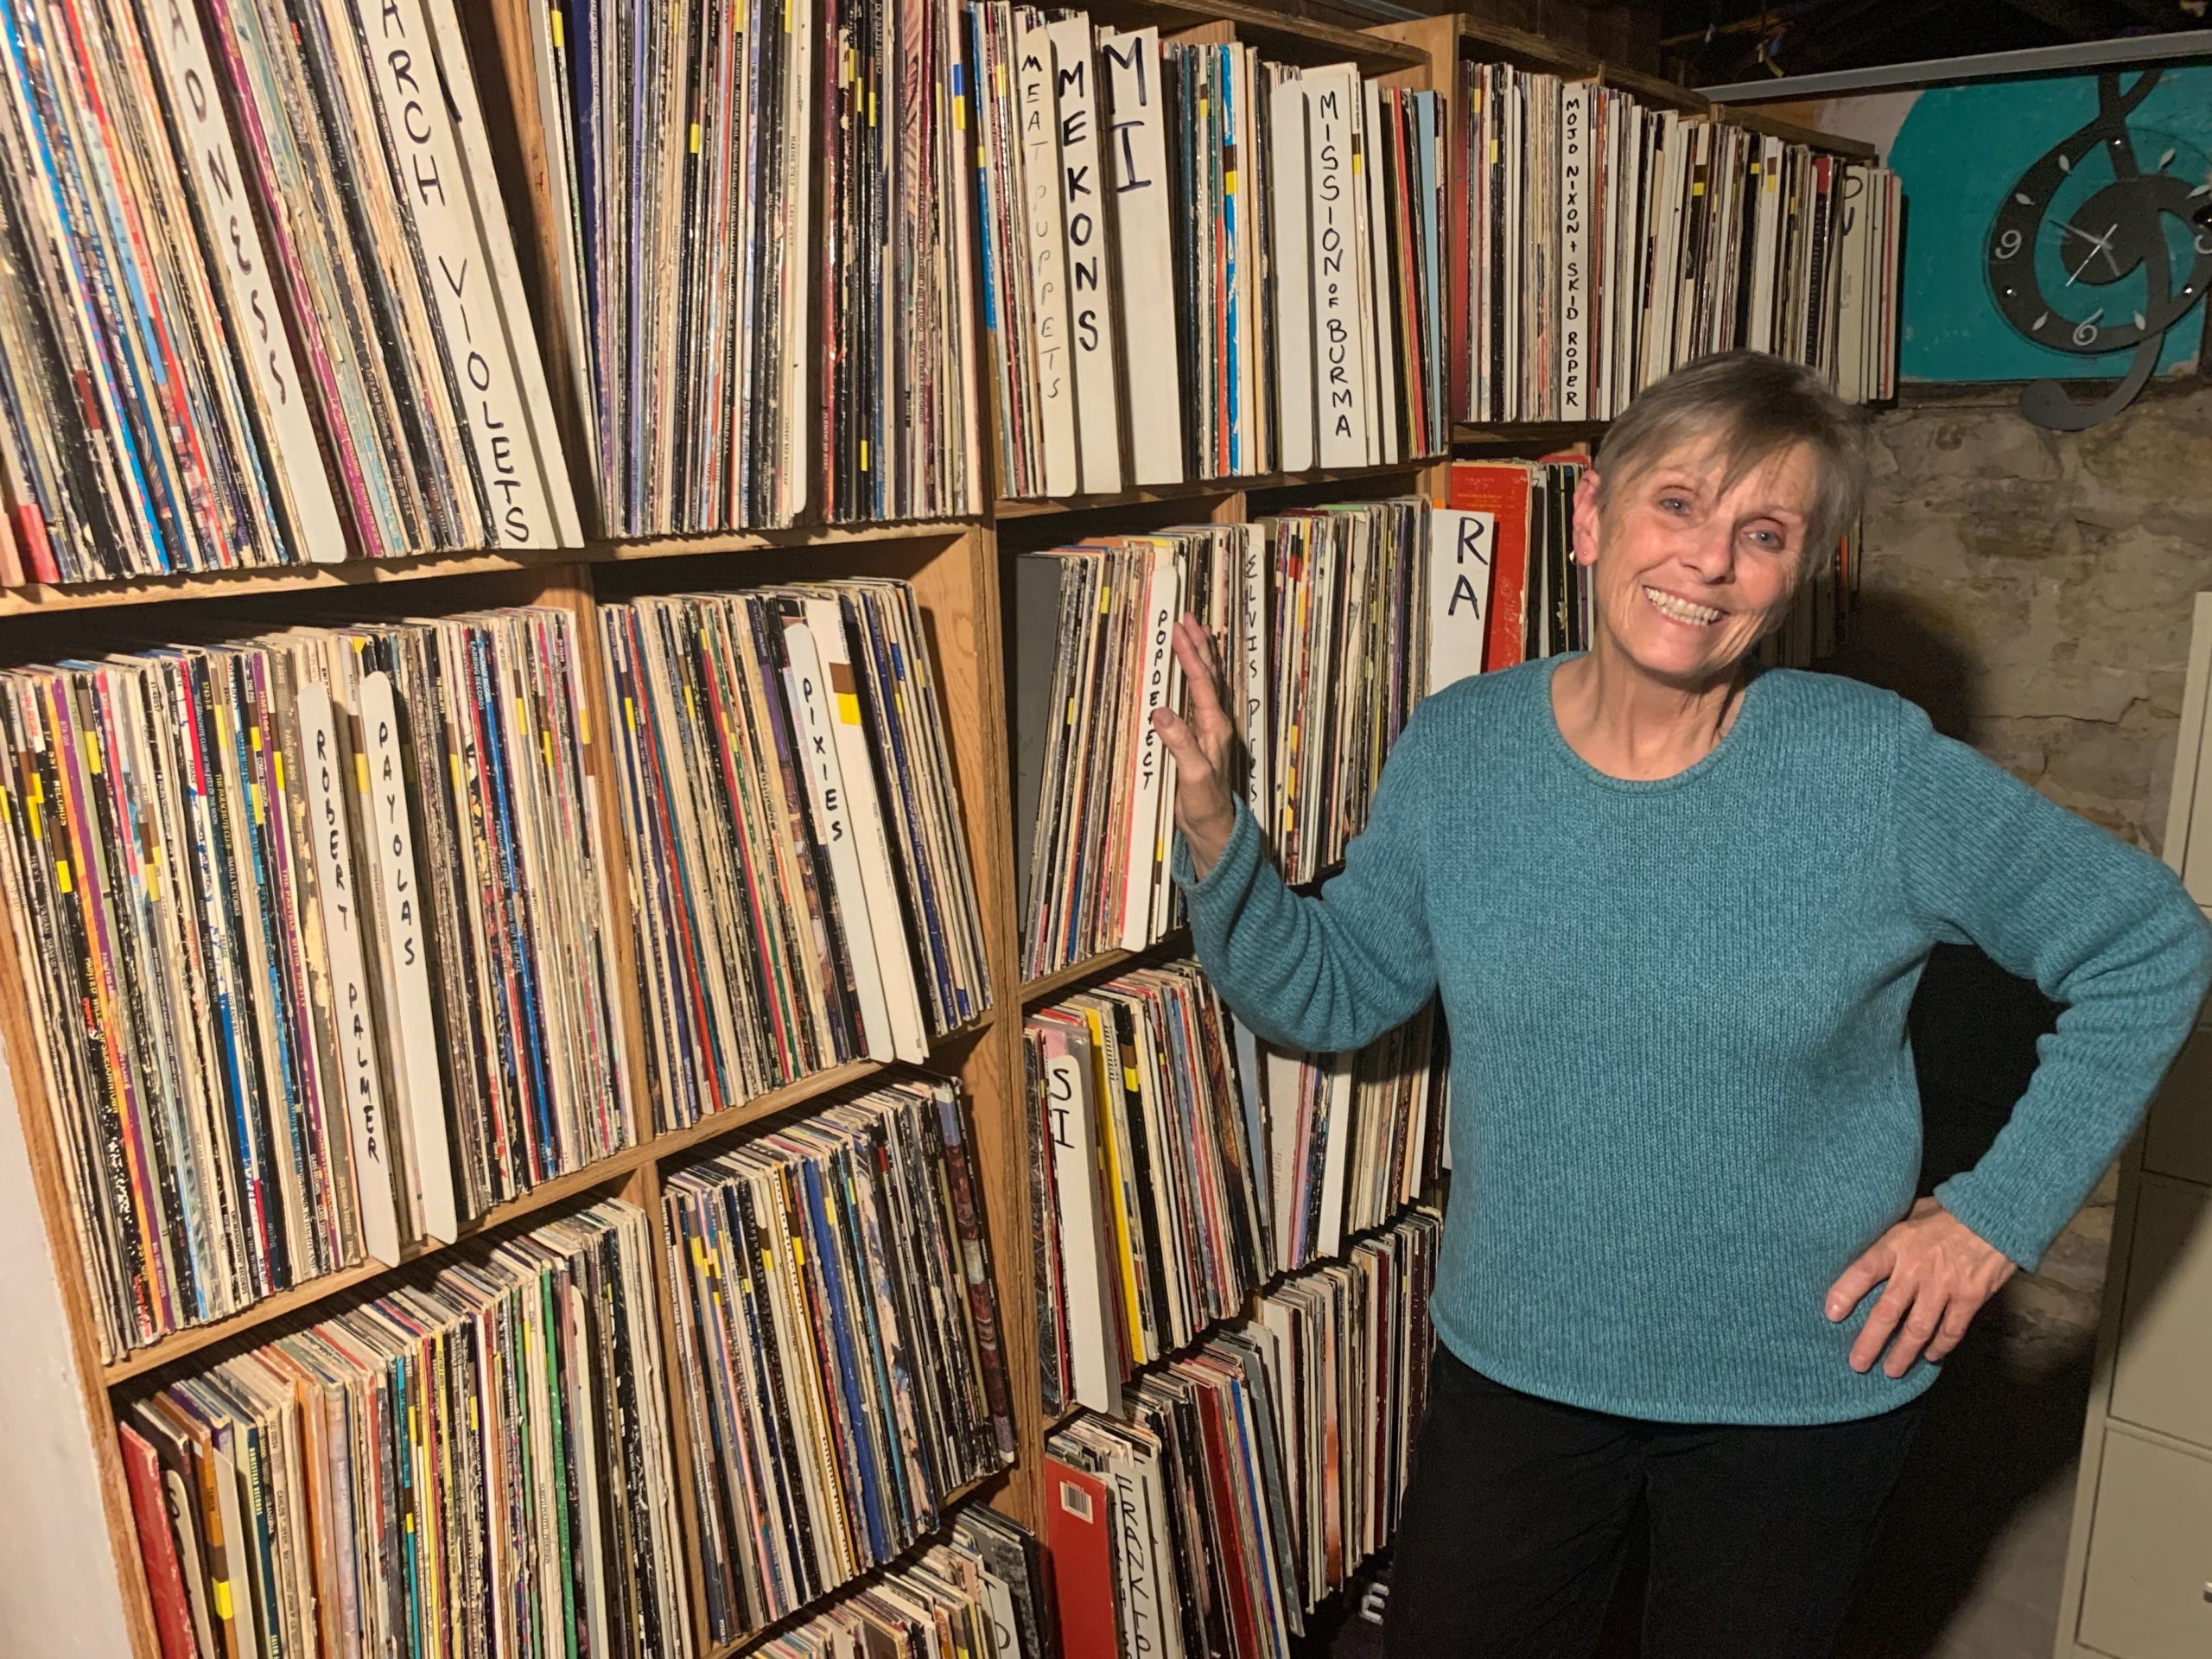 Vicky Gregor has been the music coordinator at KRCC in Colorado Springs for nearly three decades.